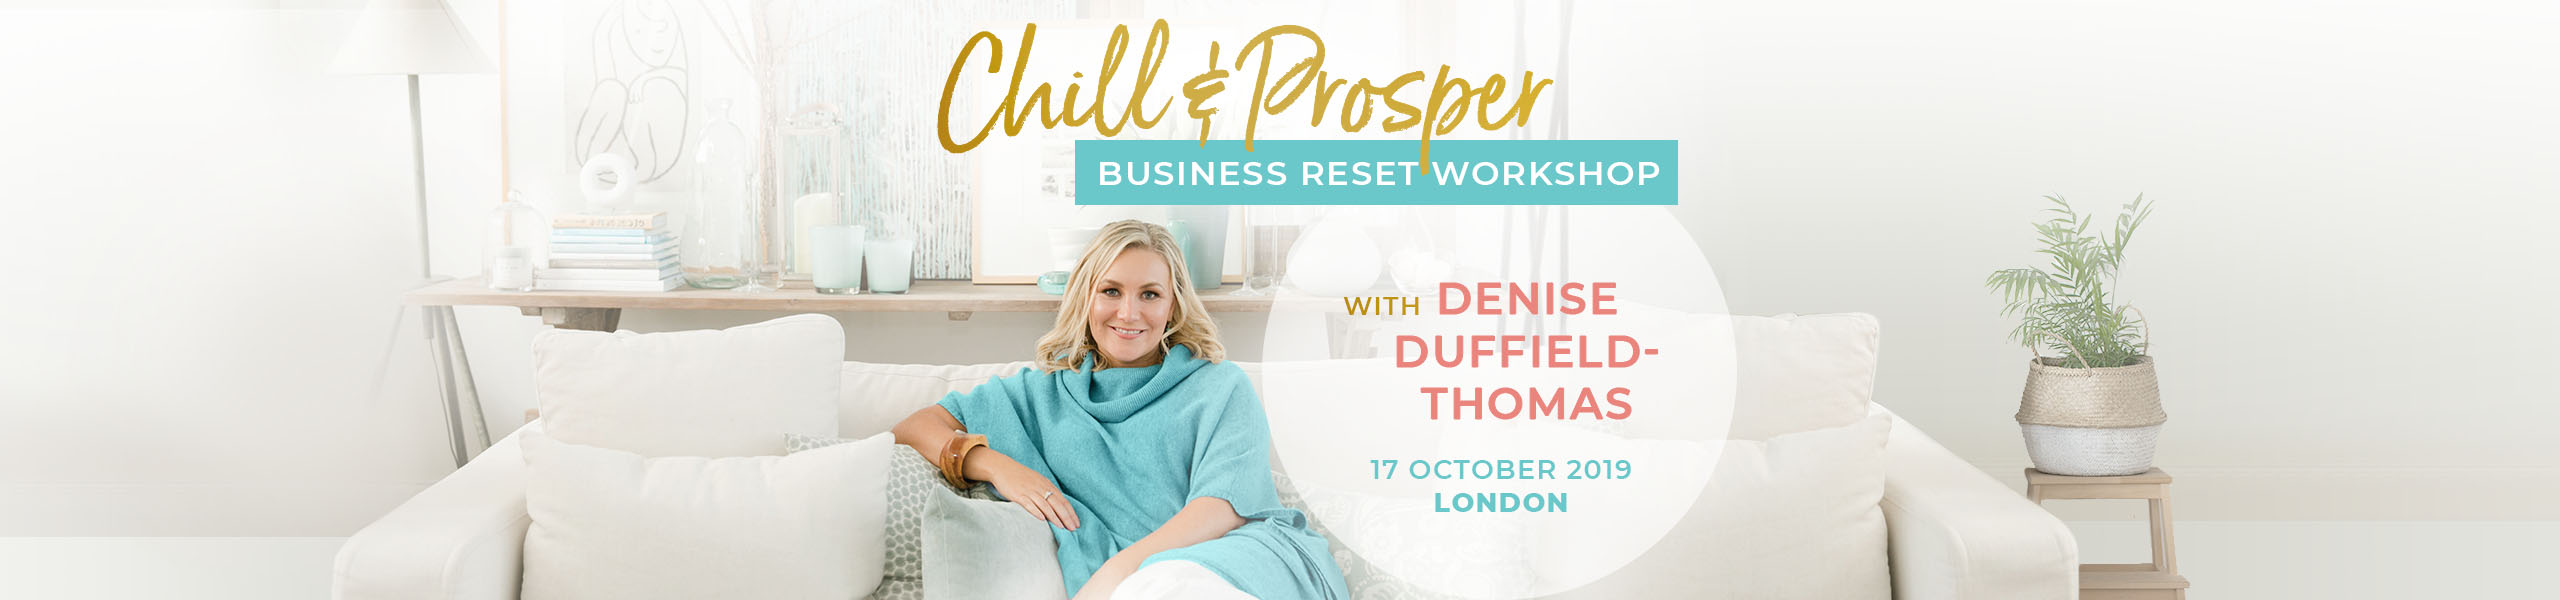 Chill & Prosper Business Reset Workshop